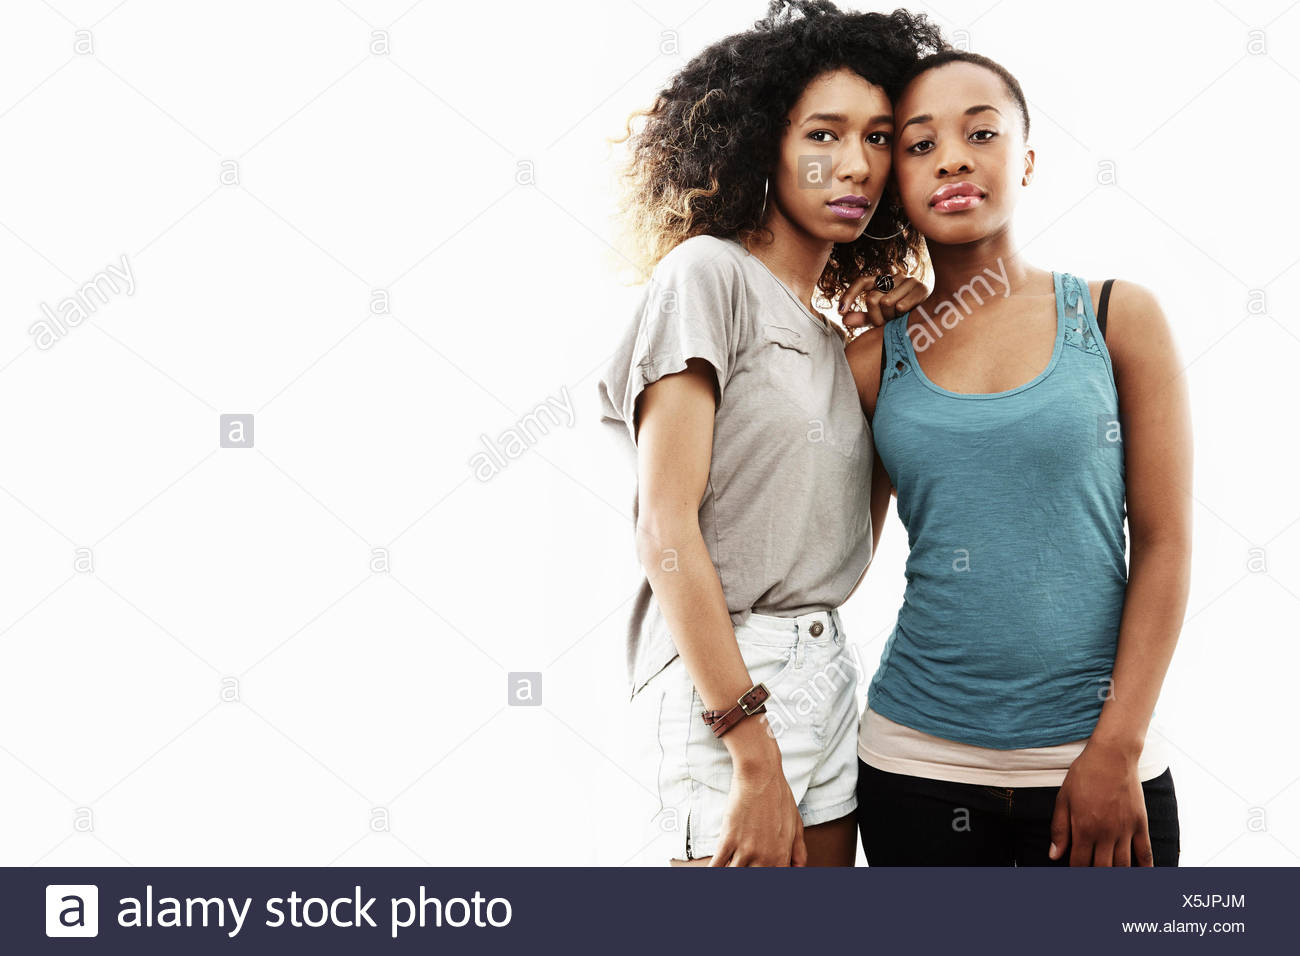 Studio portrait of two young women - Stock Image